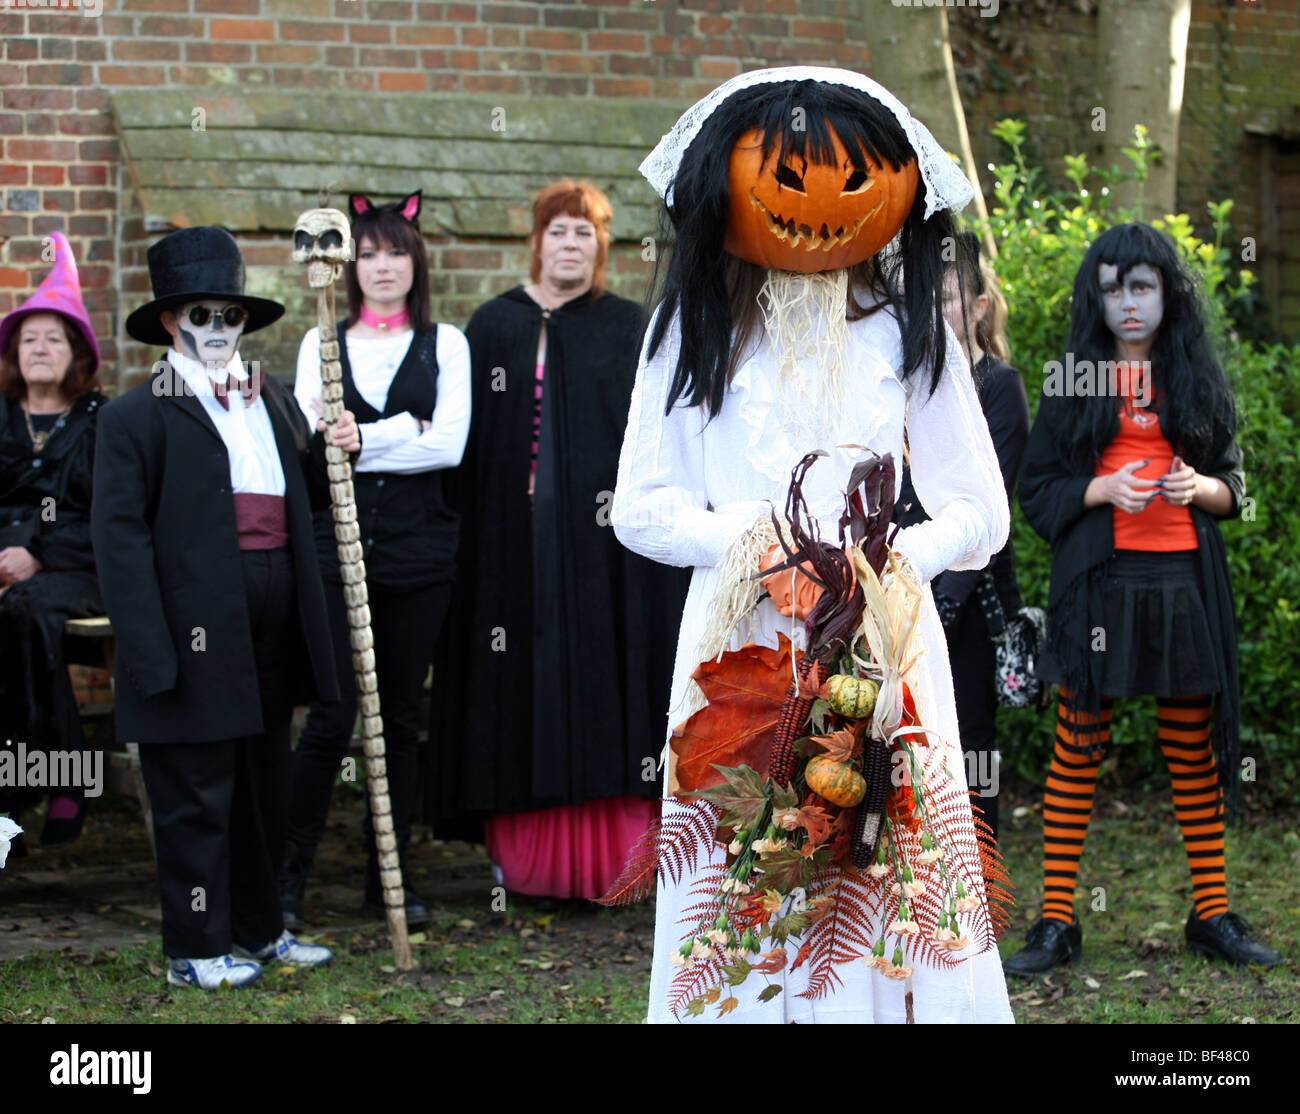 Pumpkin head Halloween competition in Burley in the New Forrest Hampshire United Kingdom - Stock Image